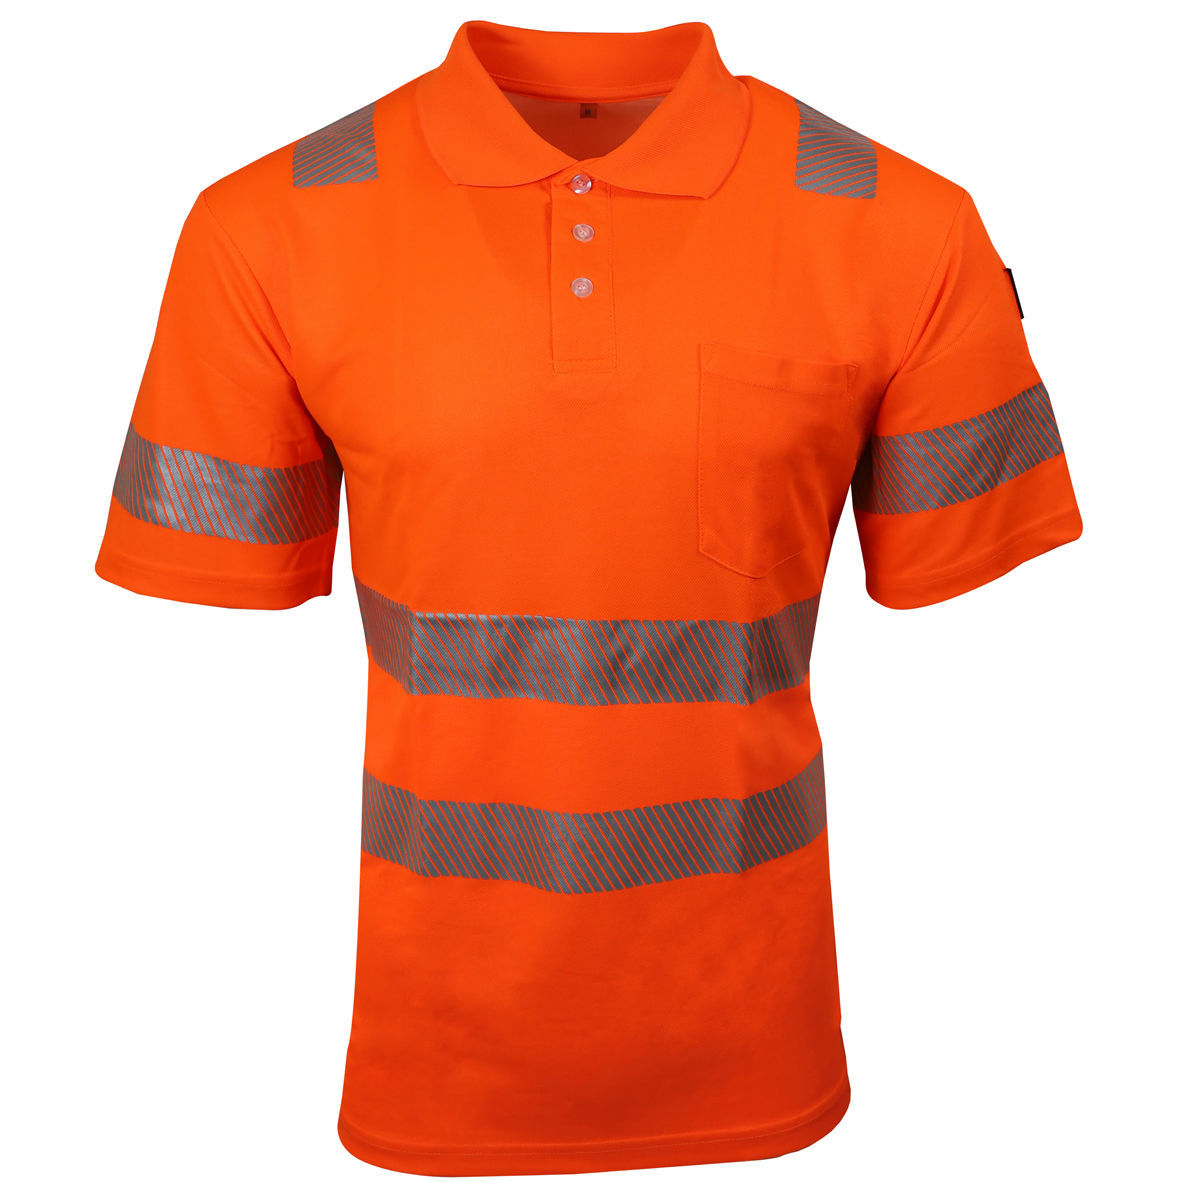 Picture of Röti Polo-Shirt, Kurzarm